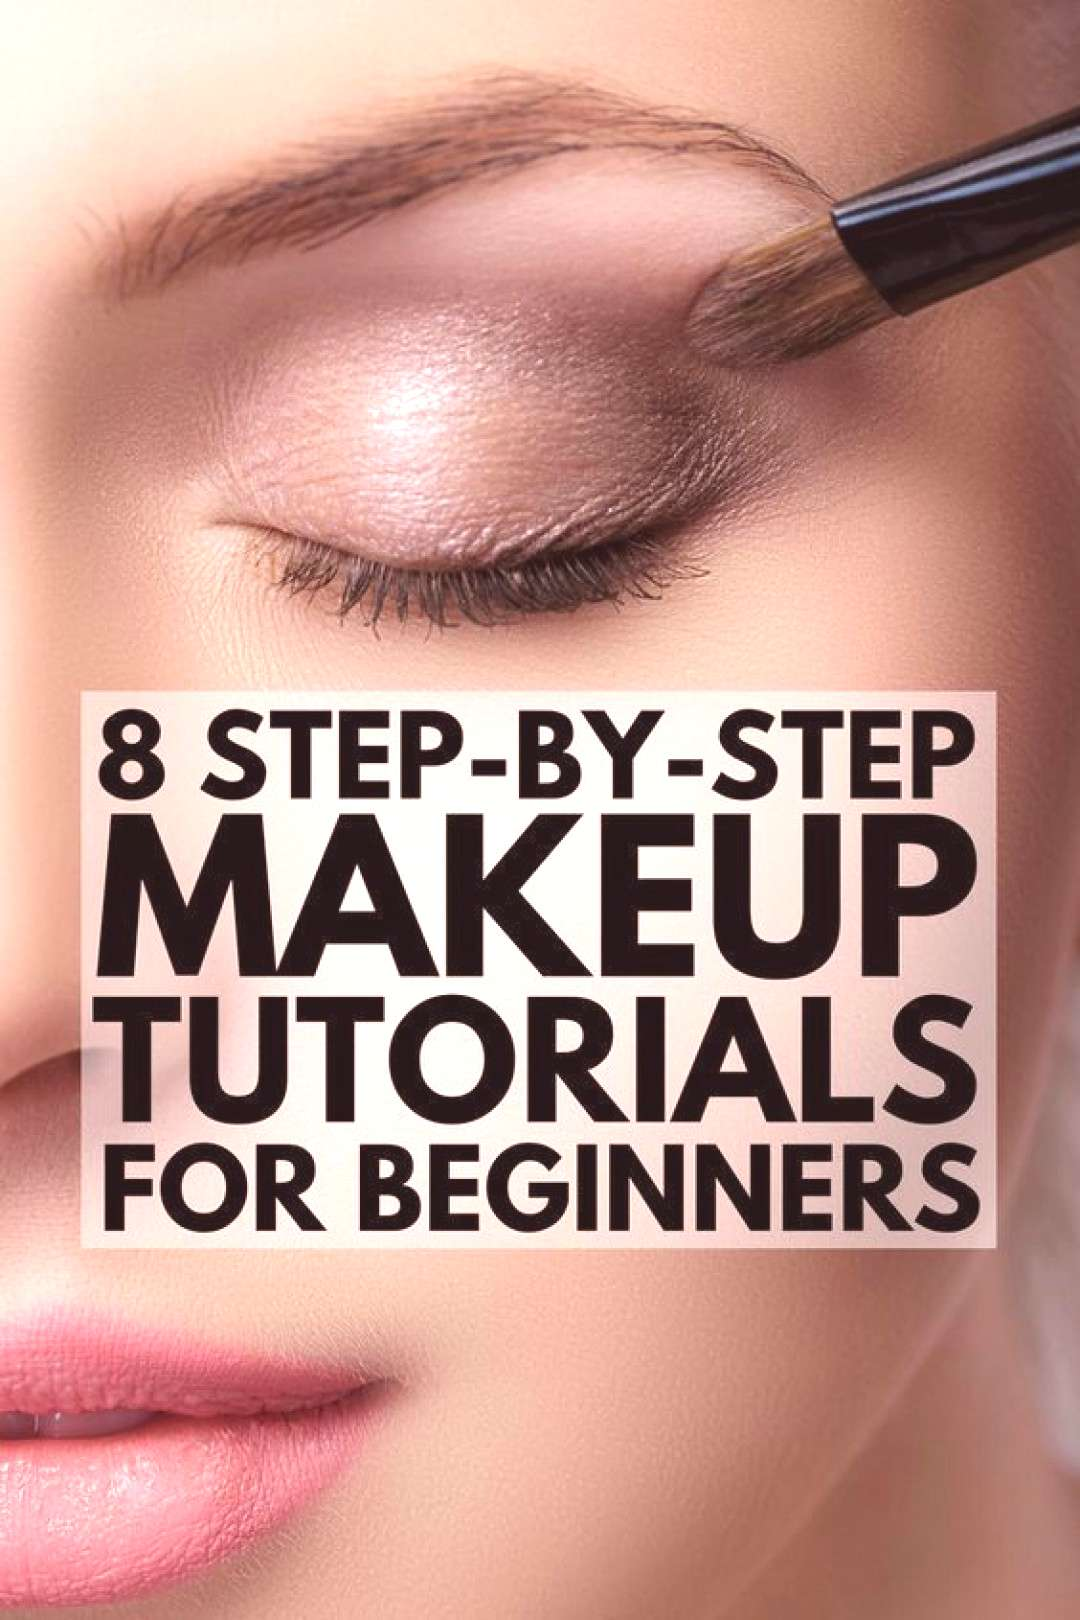 8 step-by-step mak click for more ... 8 step-by-step makeup tutorials for beginners to teach you th